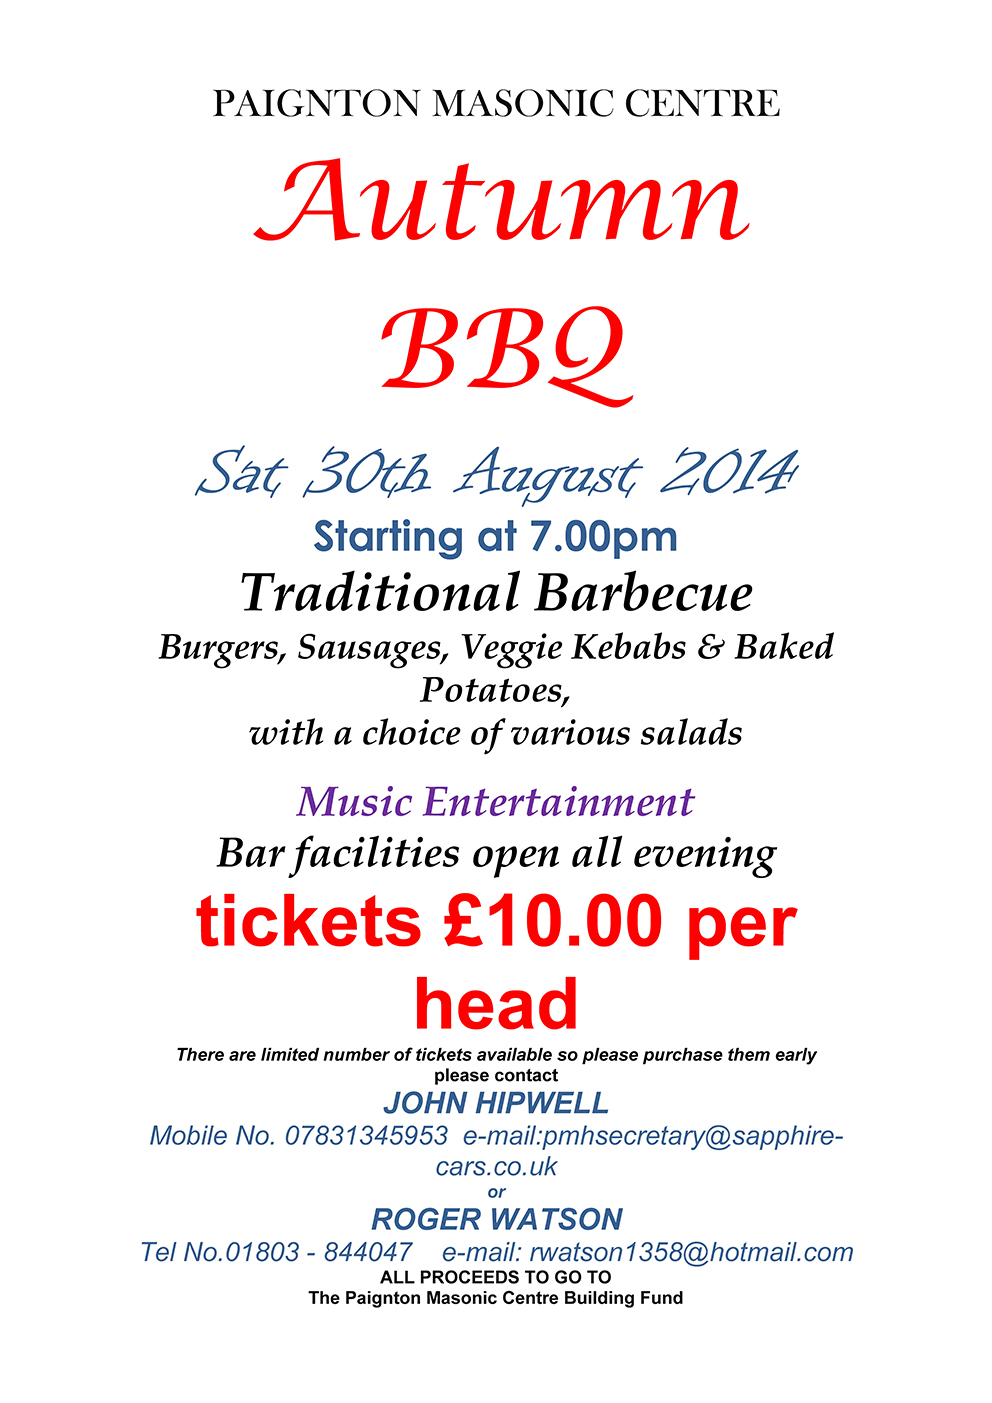 Paignton Masonic Centre Autumn BBQ Sat 30th August 2014 7pm